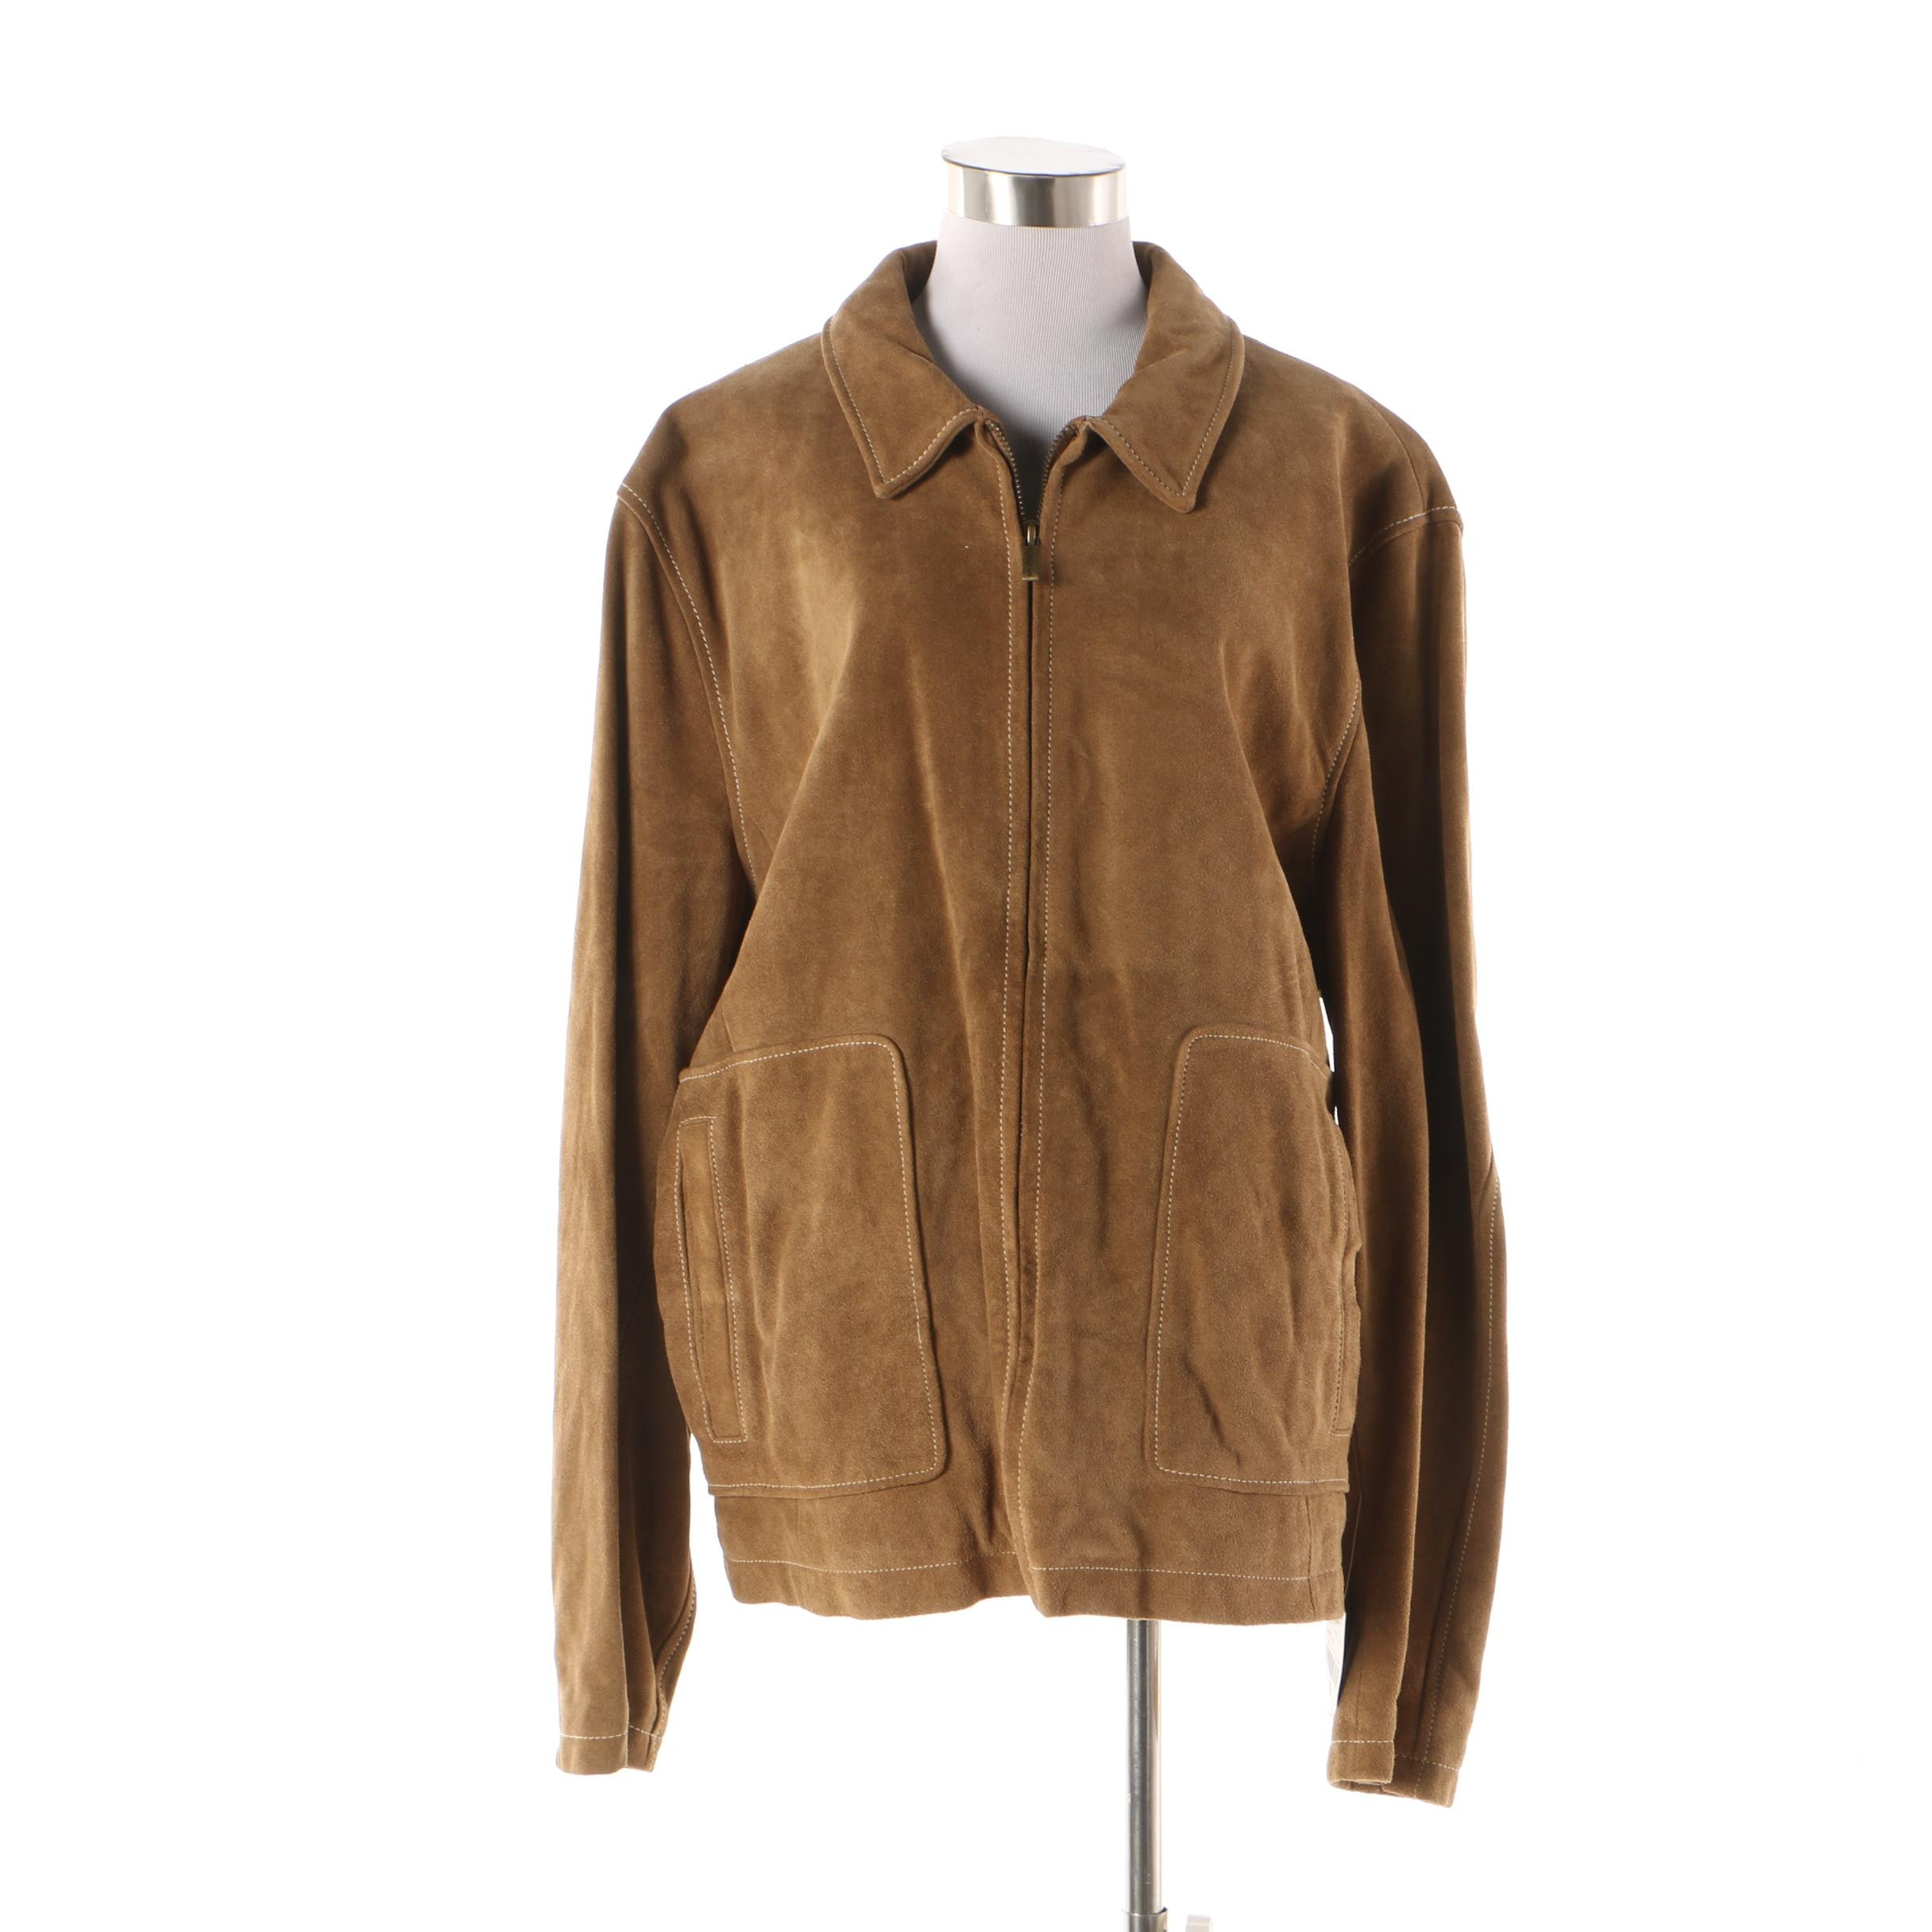 Wilsons Leather M. Julian Light Brown Suede Jacket